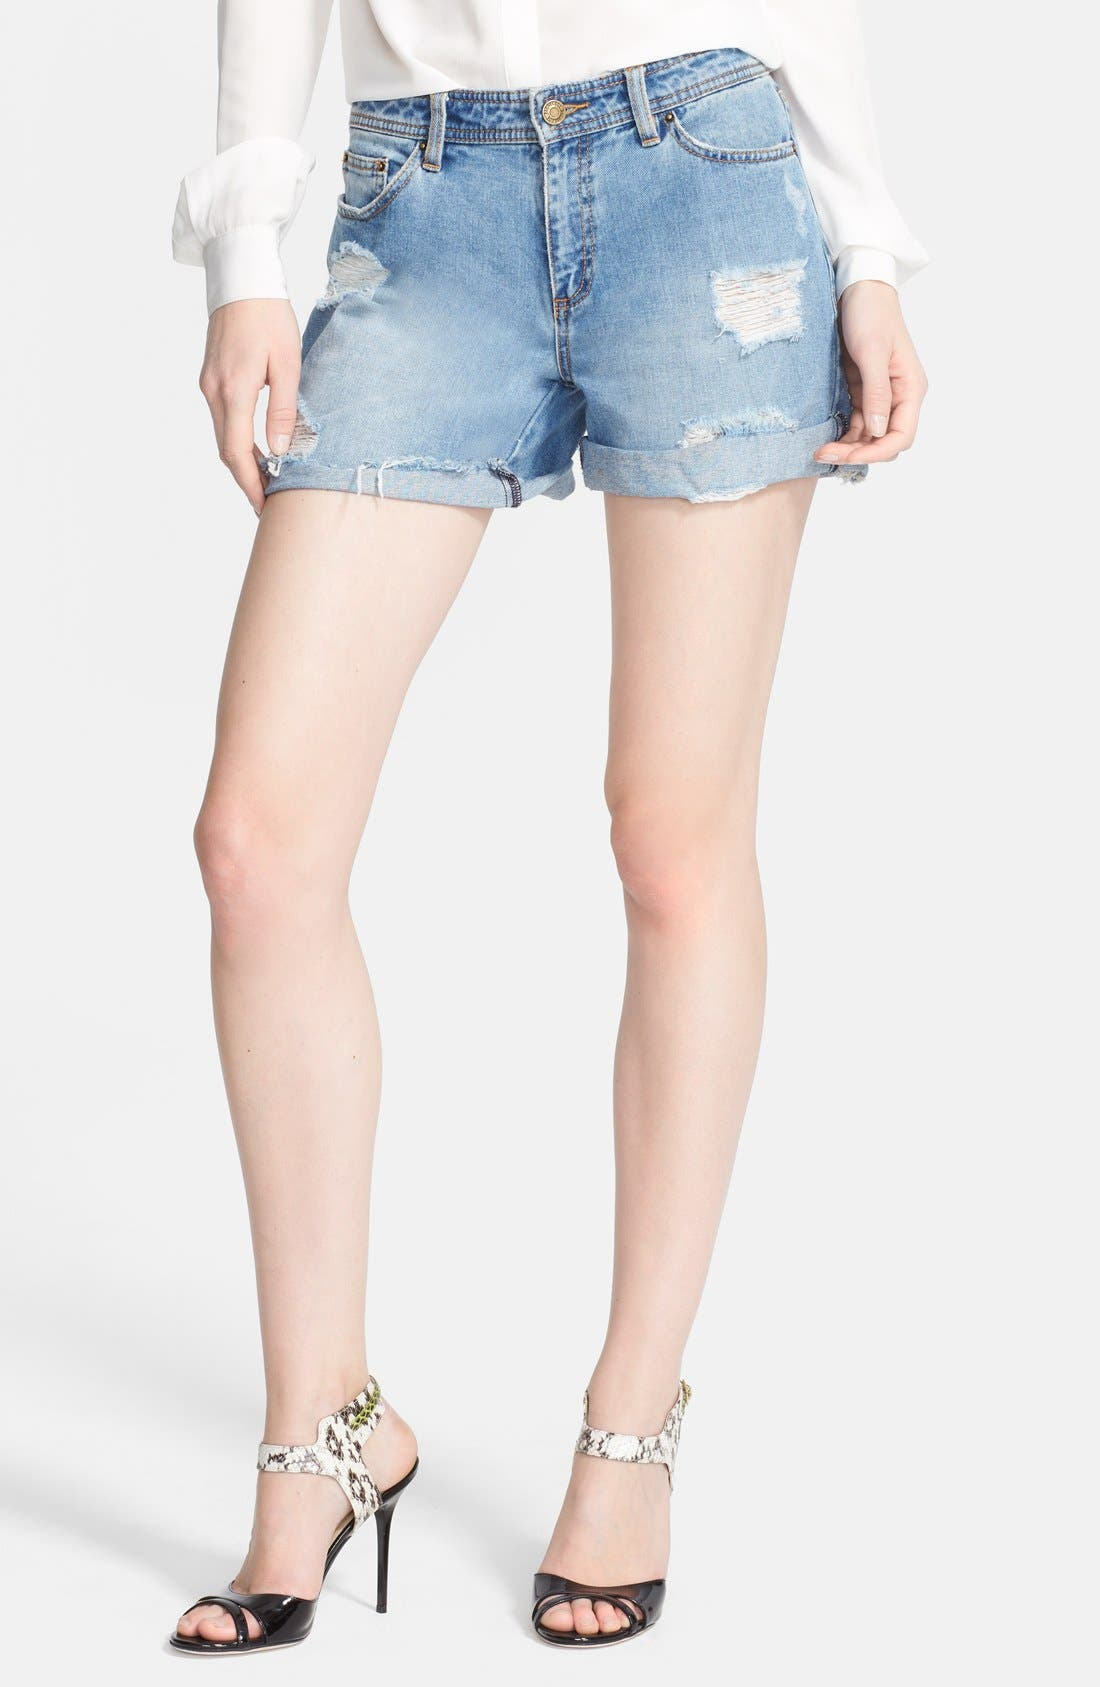 Alternate Image 1 Selected - Rachel Zoe 'Jocelyn' Destroyed Boyfriend Jean Shorts